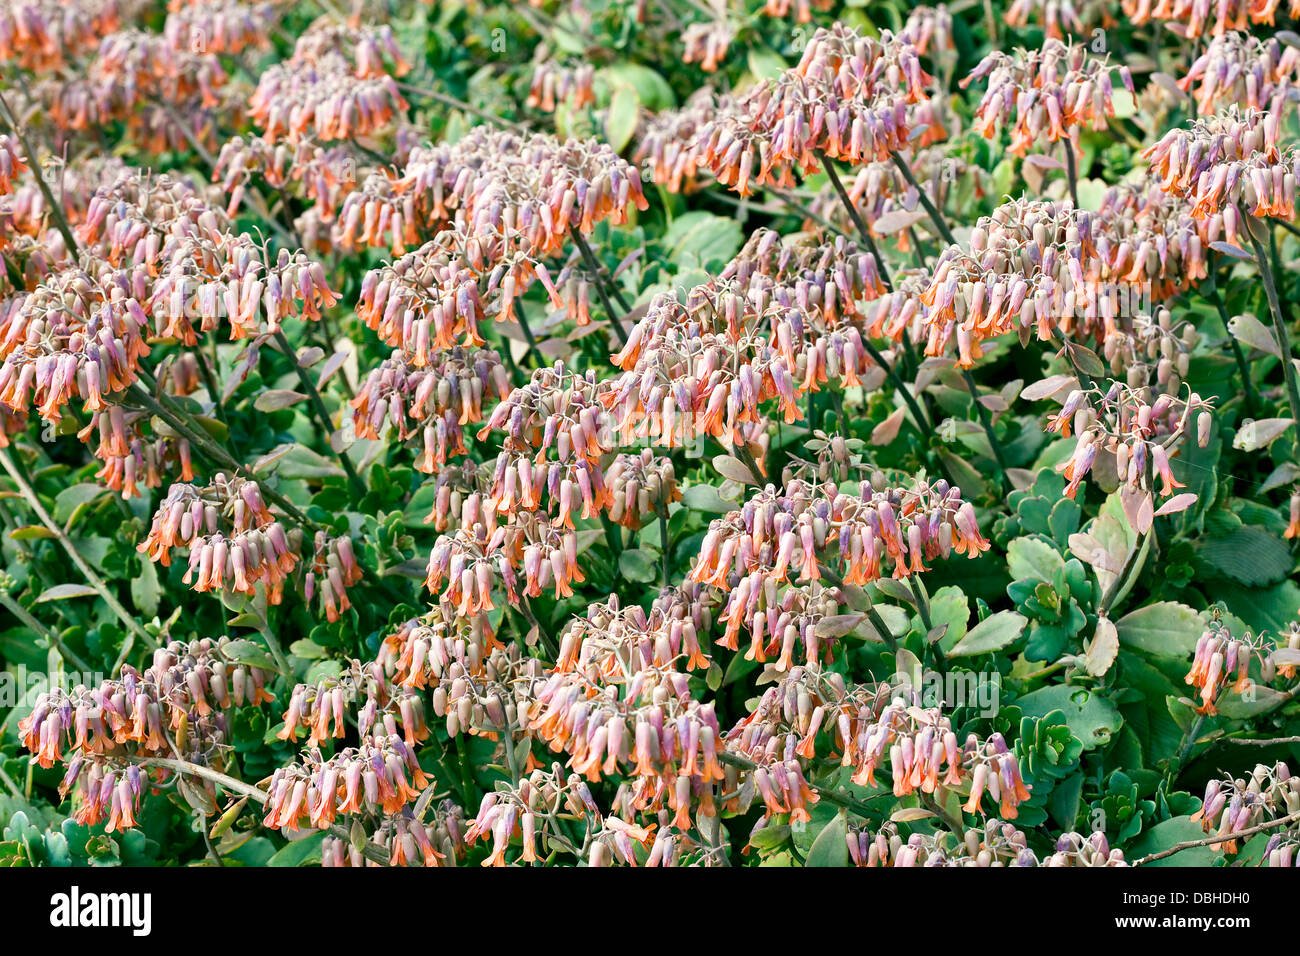 Bell shaped flowers stock photos bell shaped flowers stock images light purple and orange bell shaped flowers on a succulent plant stock mightylinksfo Images